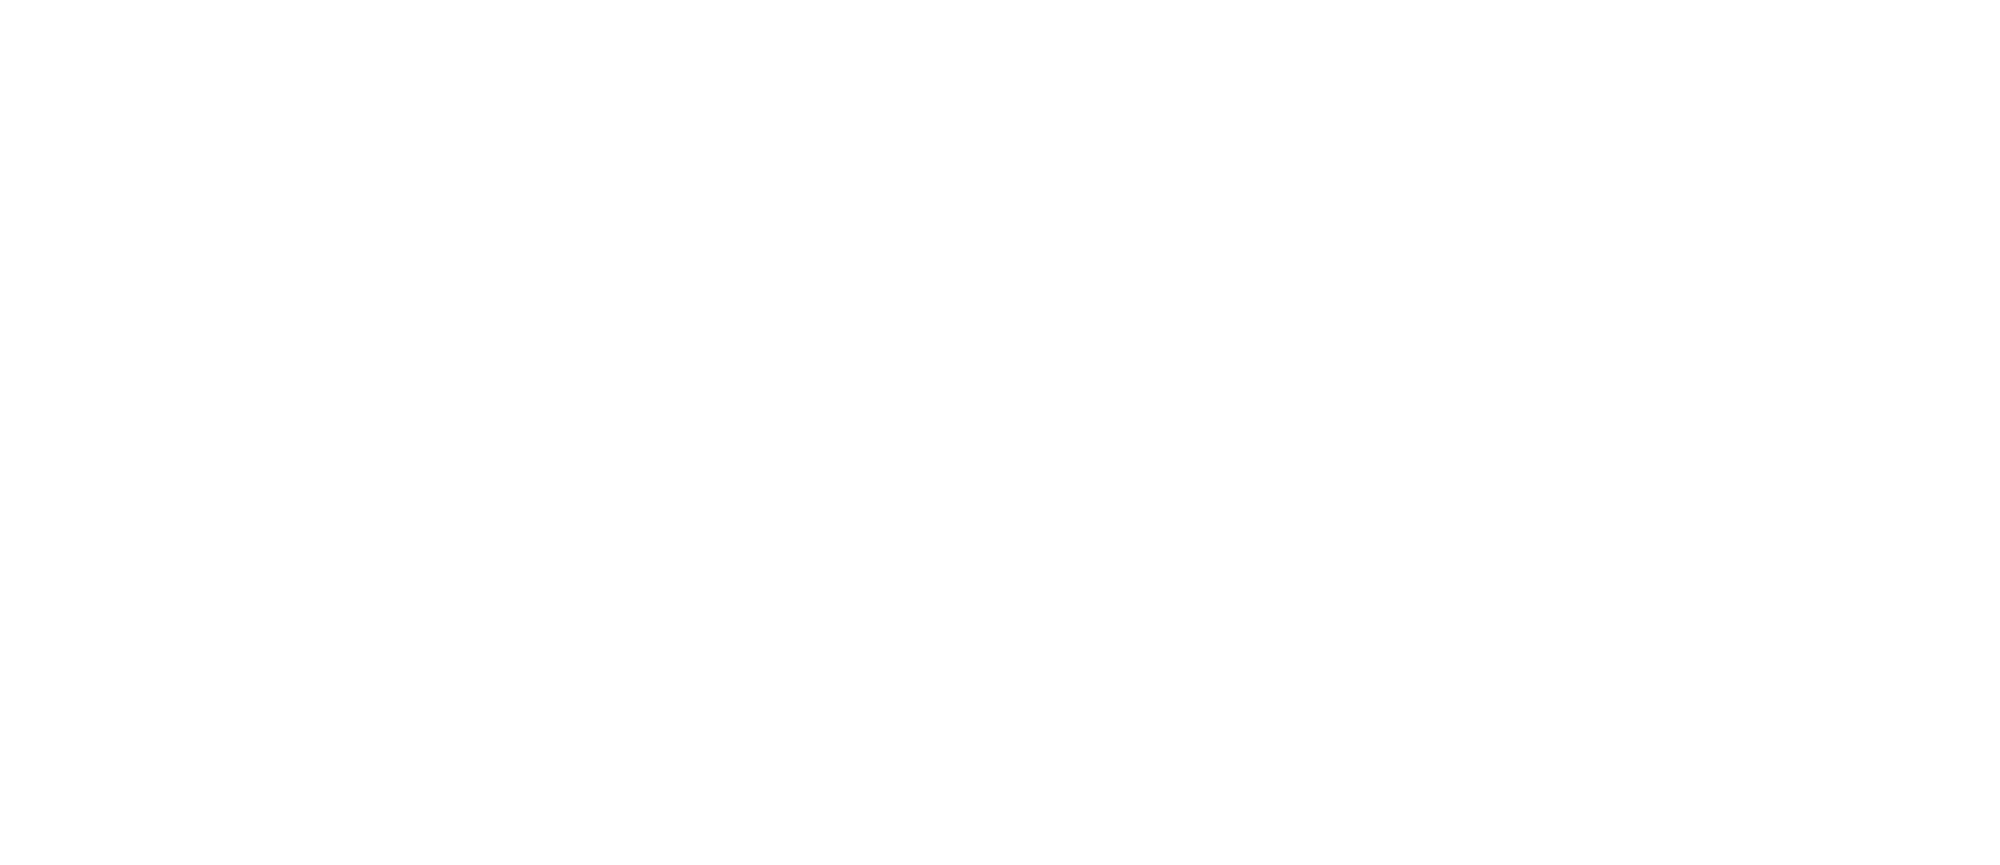 Dr. Amy Nguyen O.D. Inc.